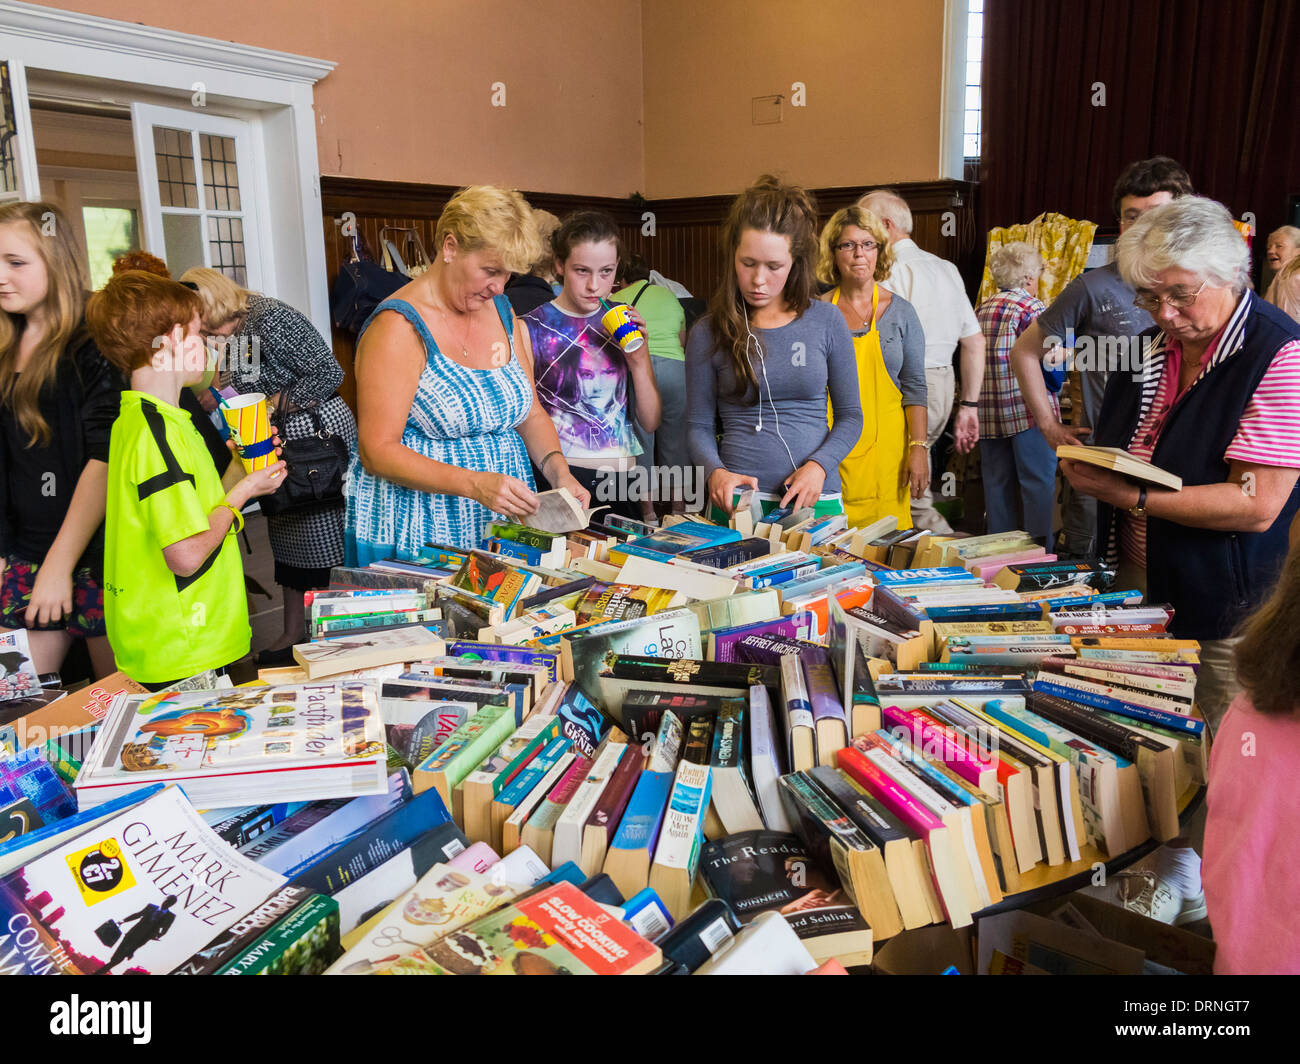 At a charity jumble sale in Dublin, Ireland, Europe - Stock Image